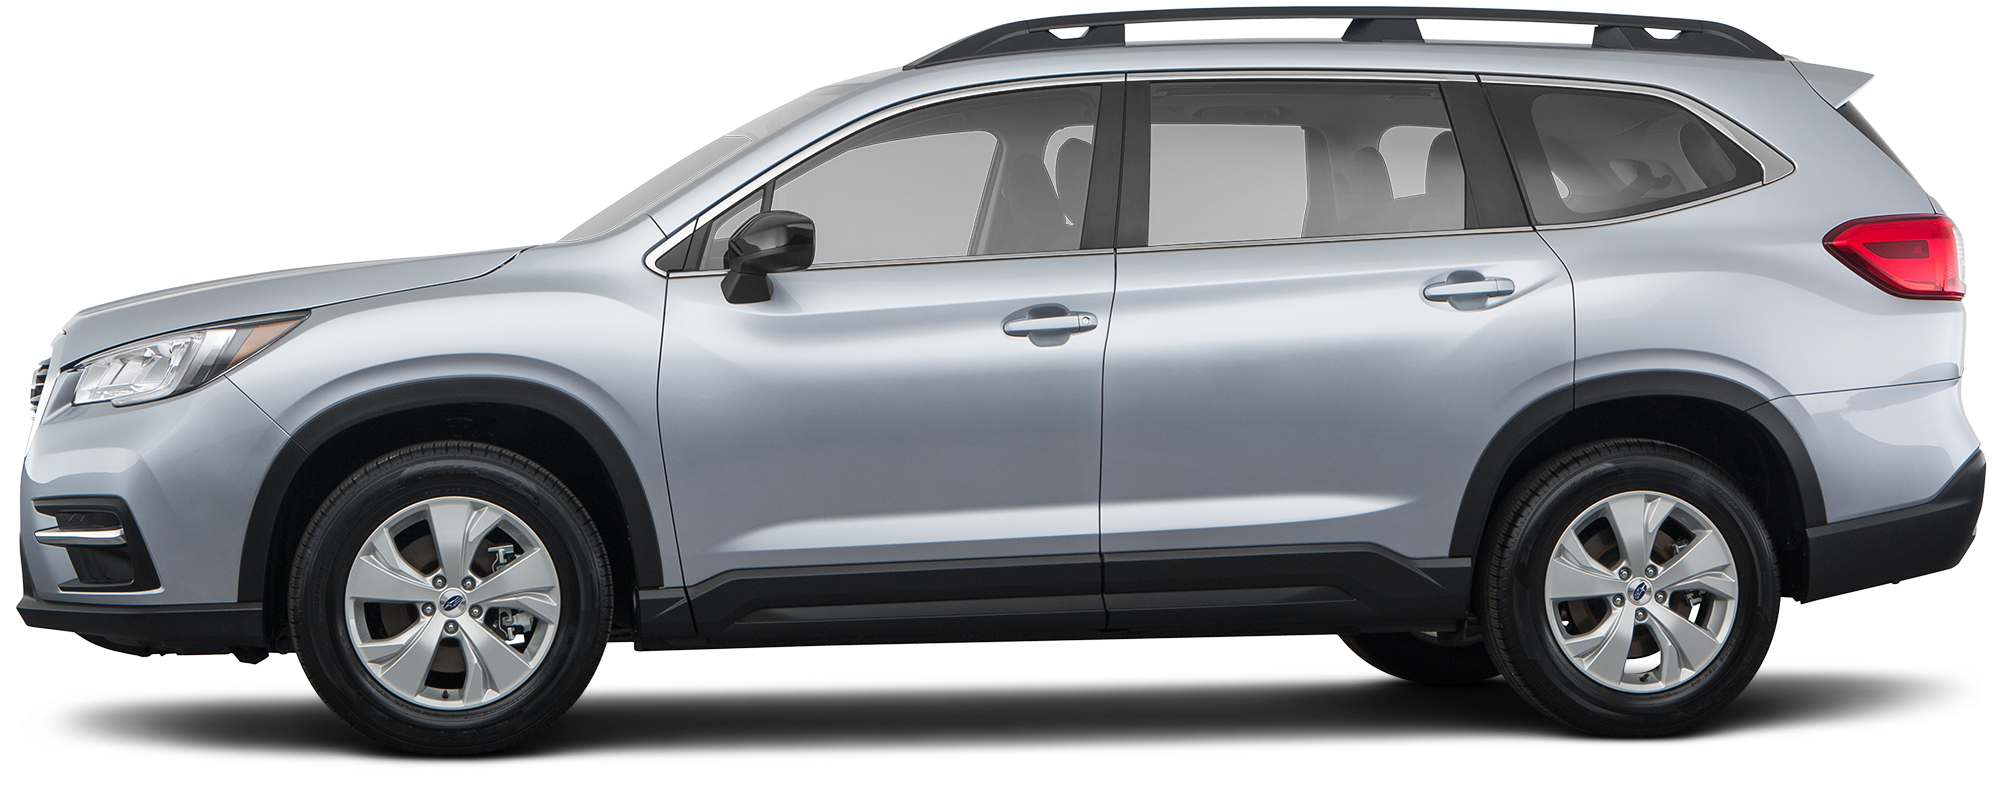 2020 Subaru Ascent SUV Base Model 8-Passenger